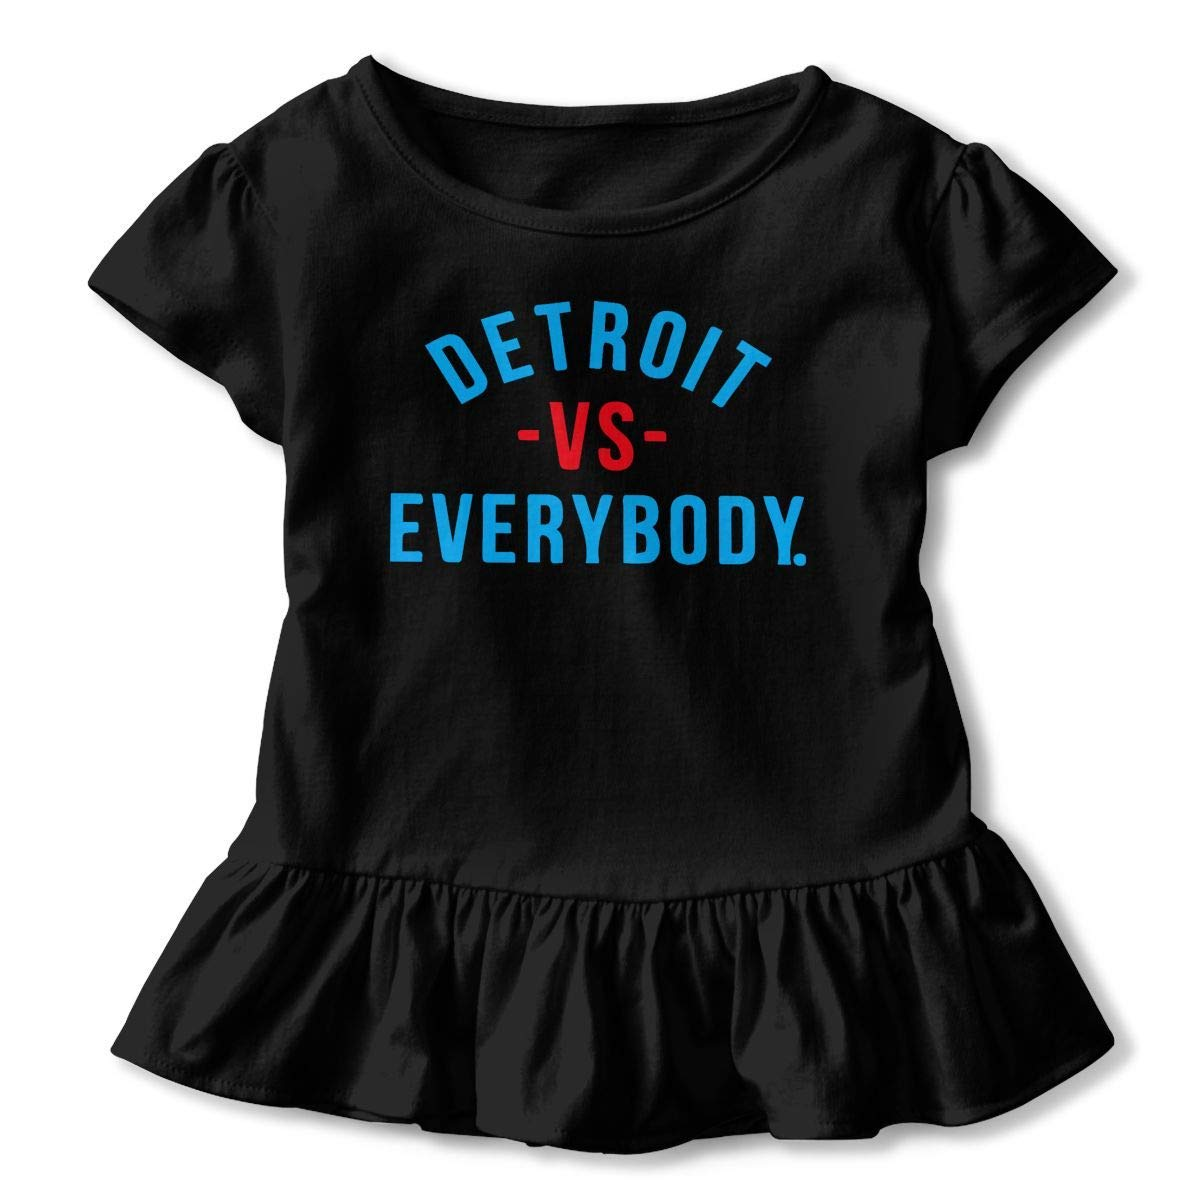 PMsunglasses Short-Sleeve Detroit Vs Everyone T-Shirts for Kids 2-6T Fashion Blouse Clothes with Falbala